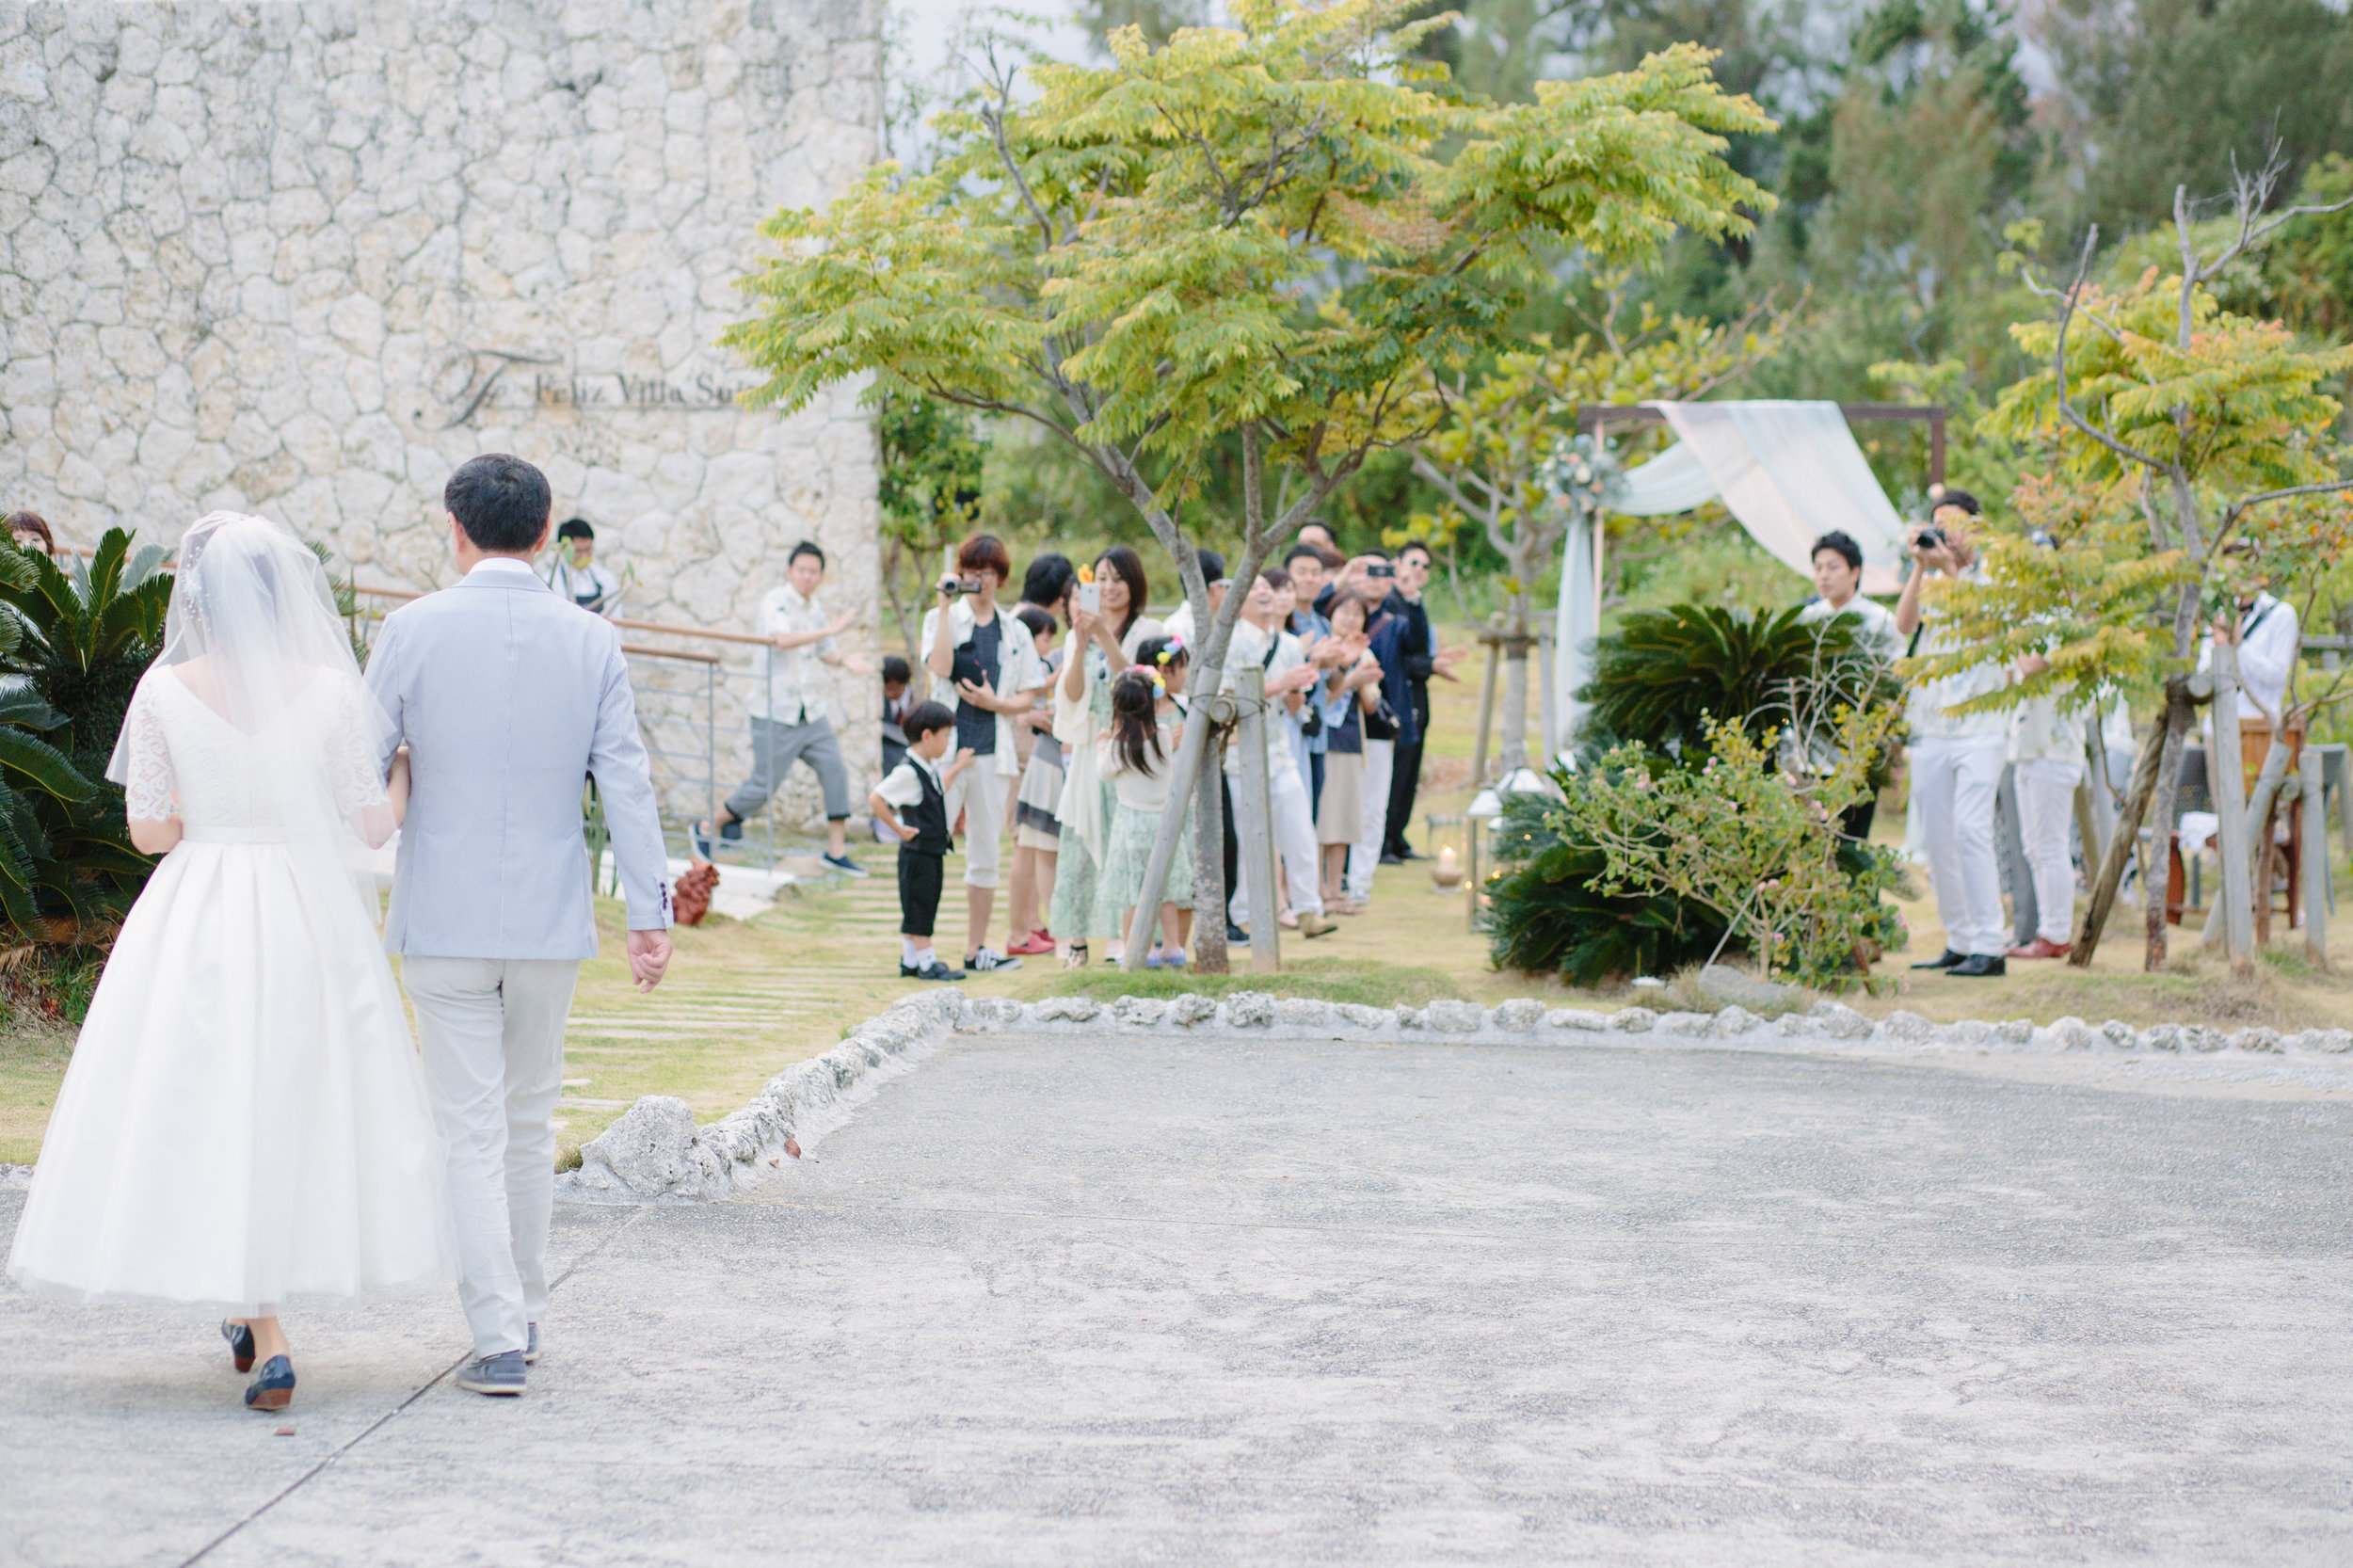 沖縄結婚式 | 出張カメラマン | Koji Nishida Photography | Produced by Belvedere | Belvedere Wedding